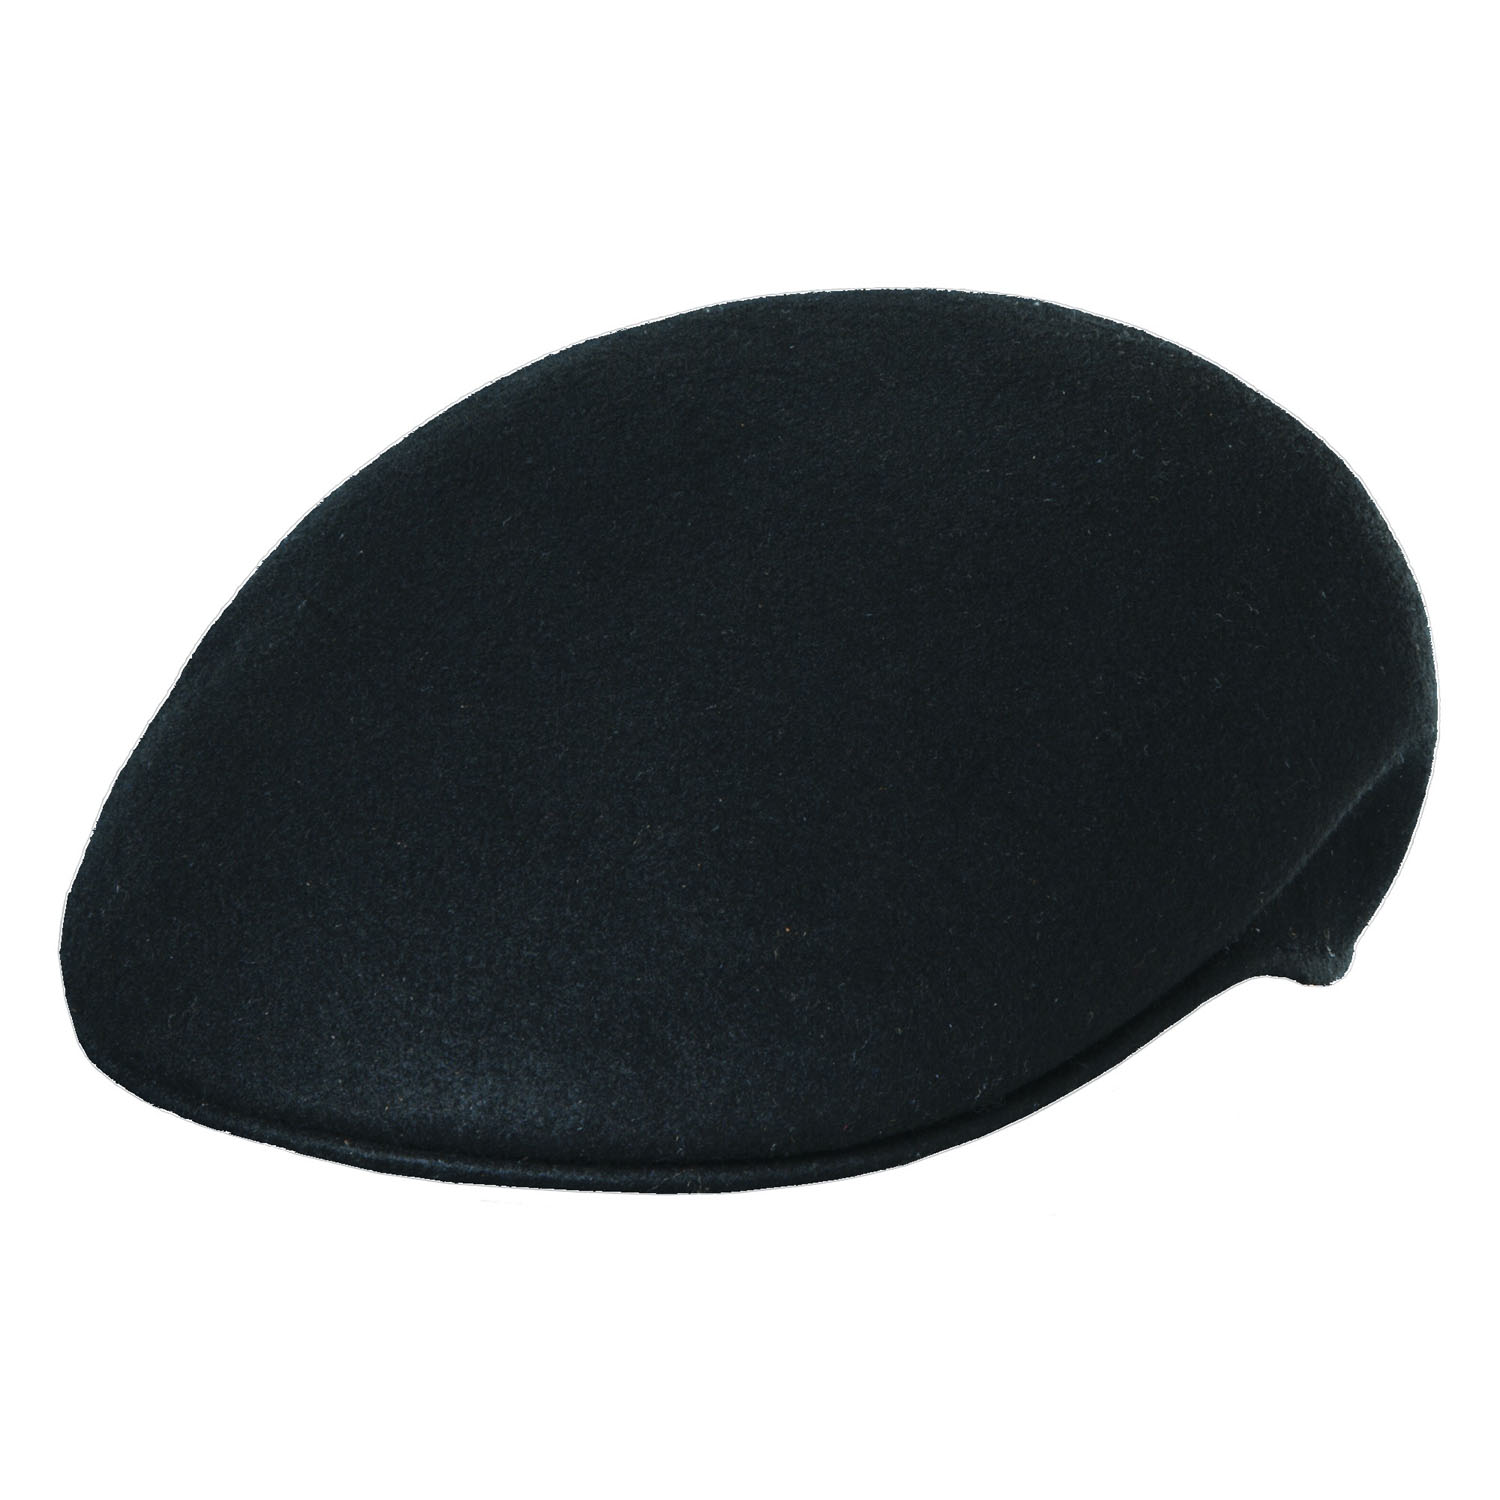 Crushable Wool Felt Ascot Hat - Black